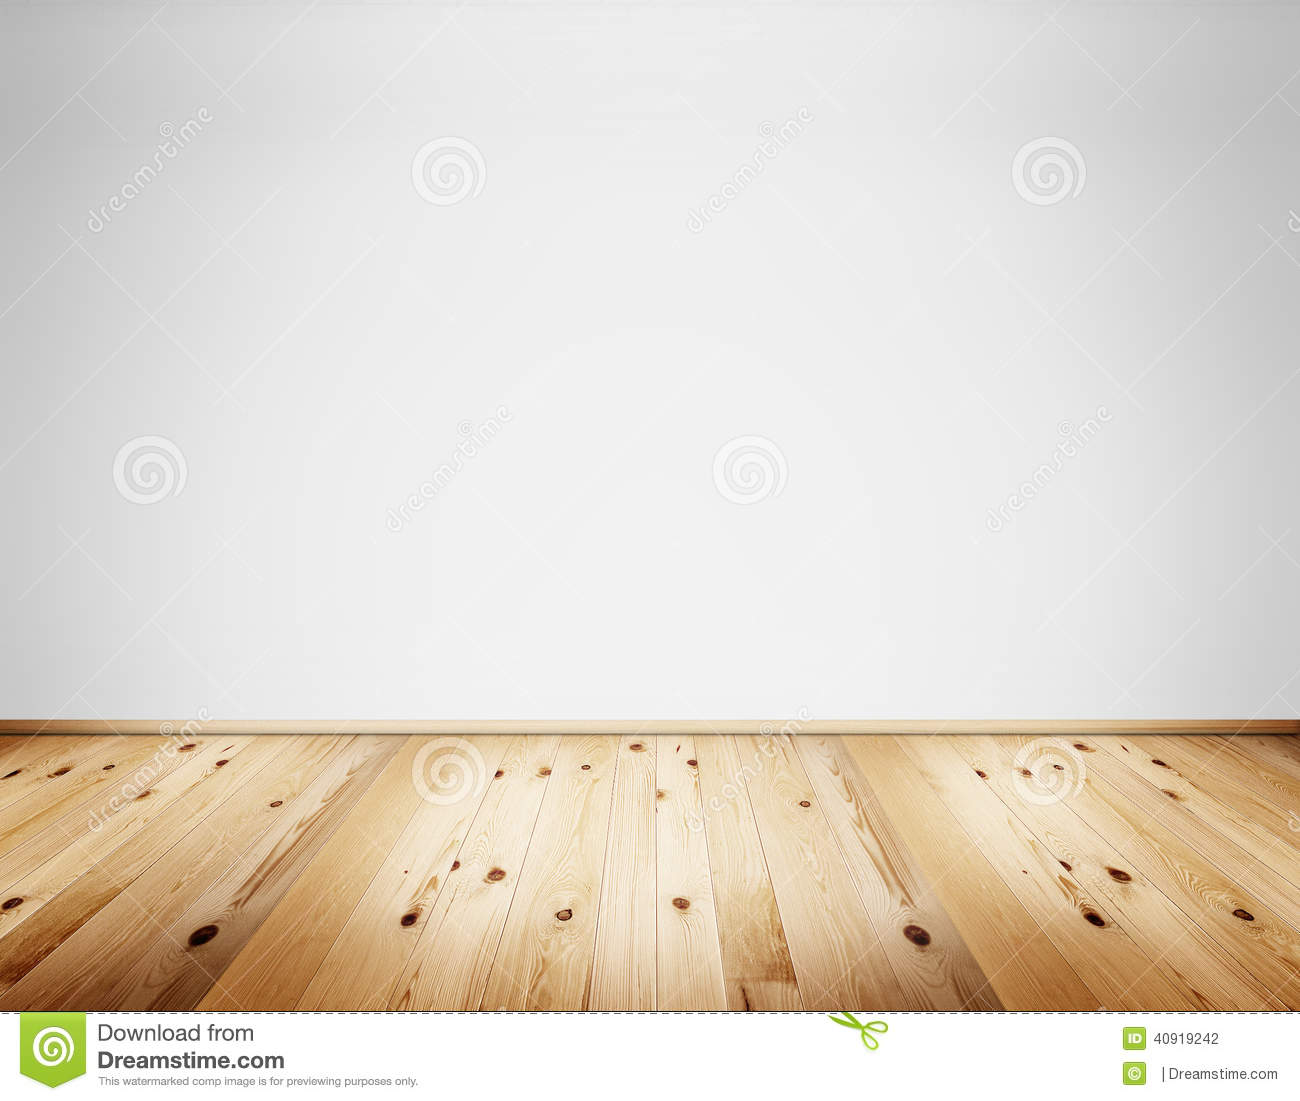 Empty clean interior with white wall and natural wooden rustic floor